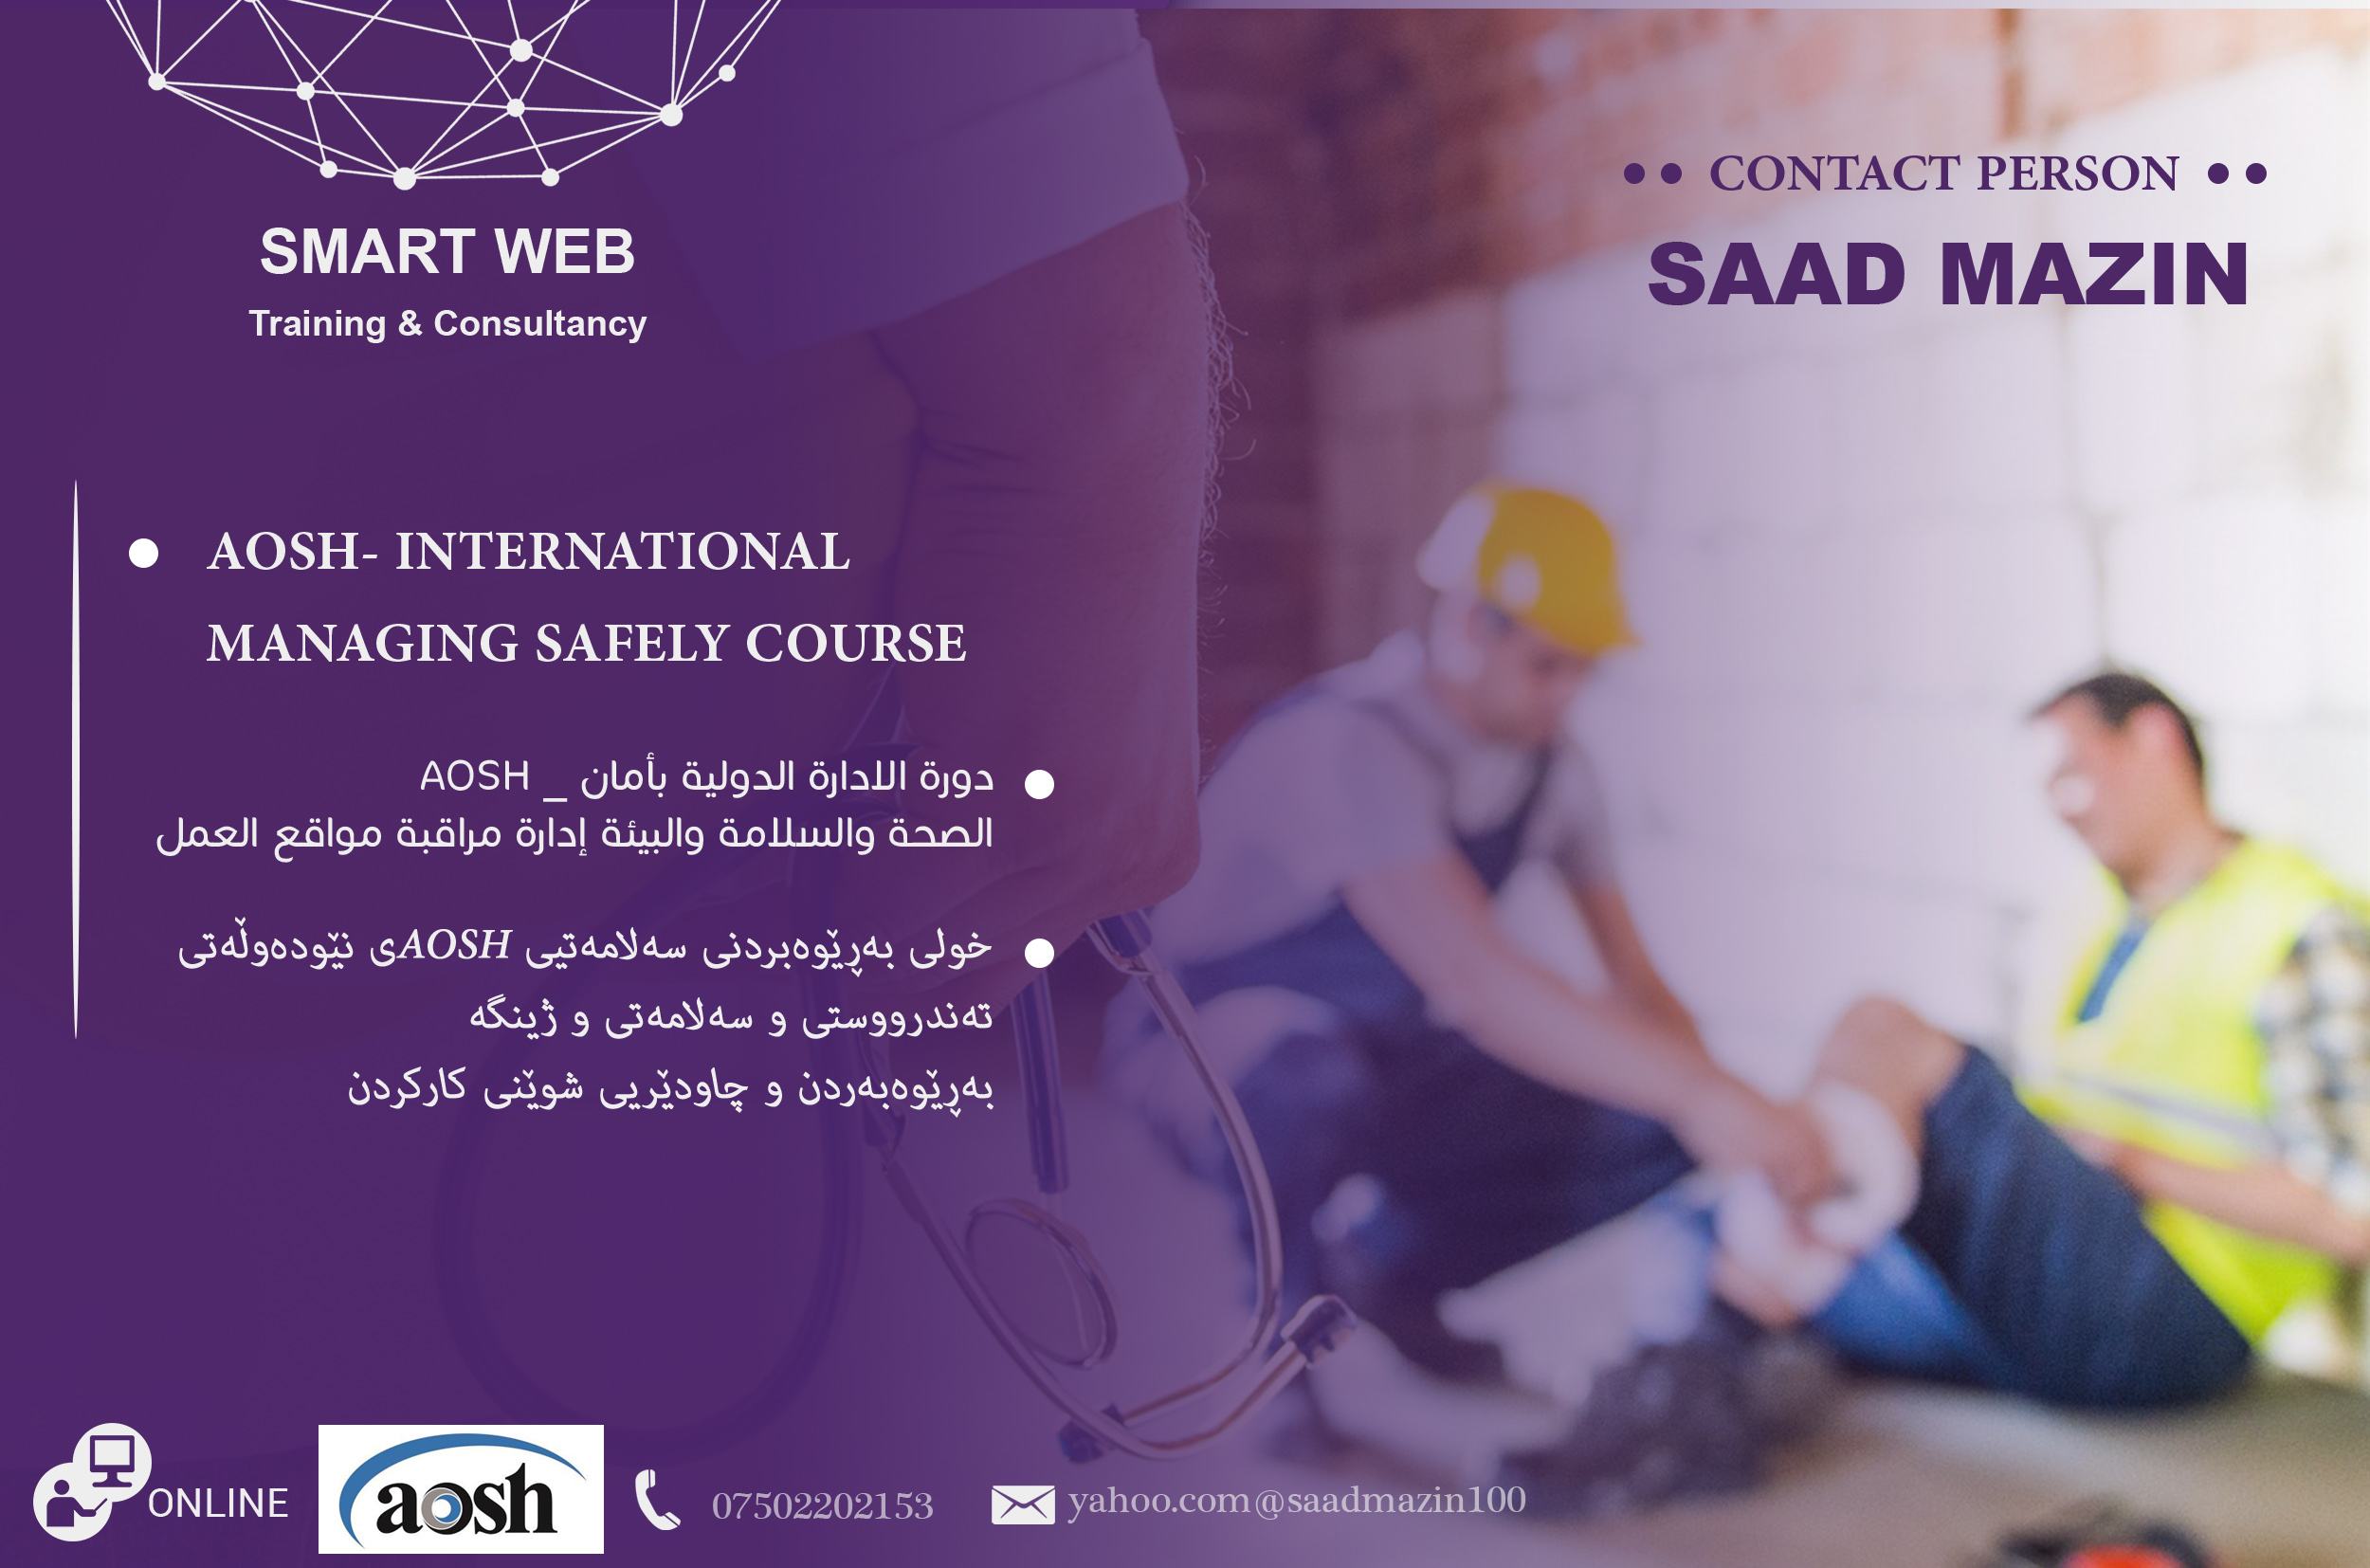 AOSH –International Managing Safely Course HEALTH ,SAFETY , ENVIRONEMENTAL WORK SITE CONTROL MANAGEMENT